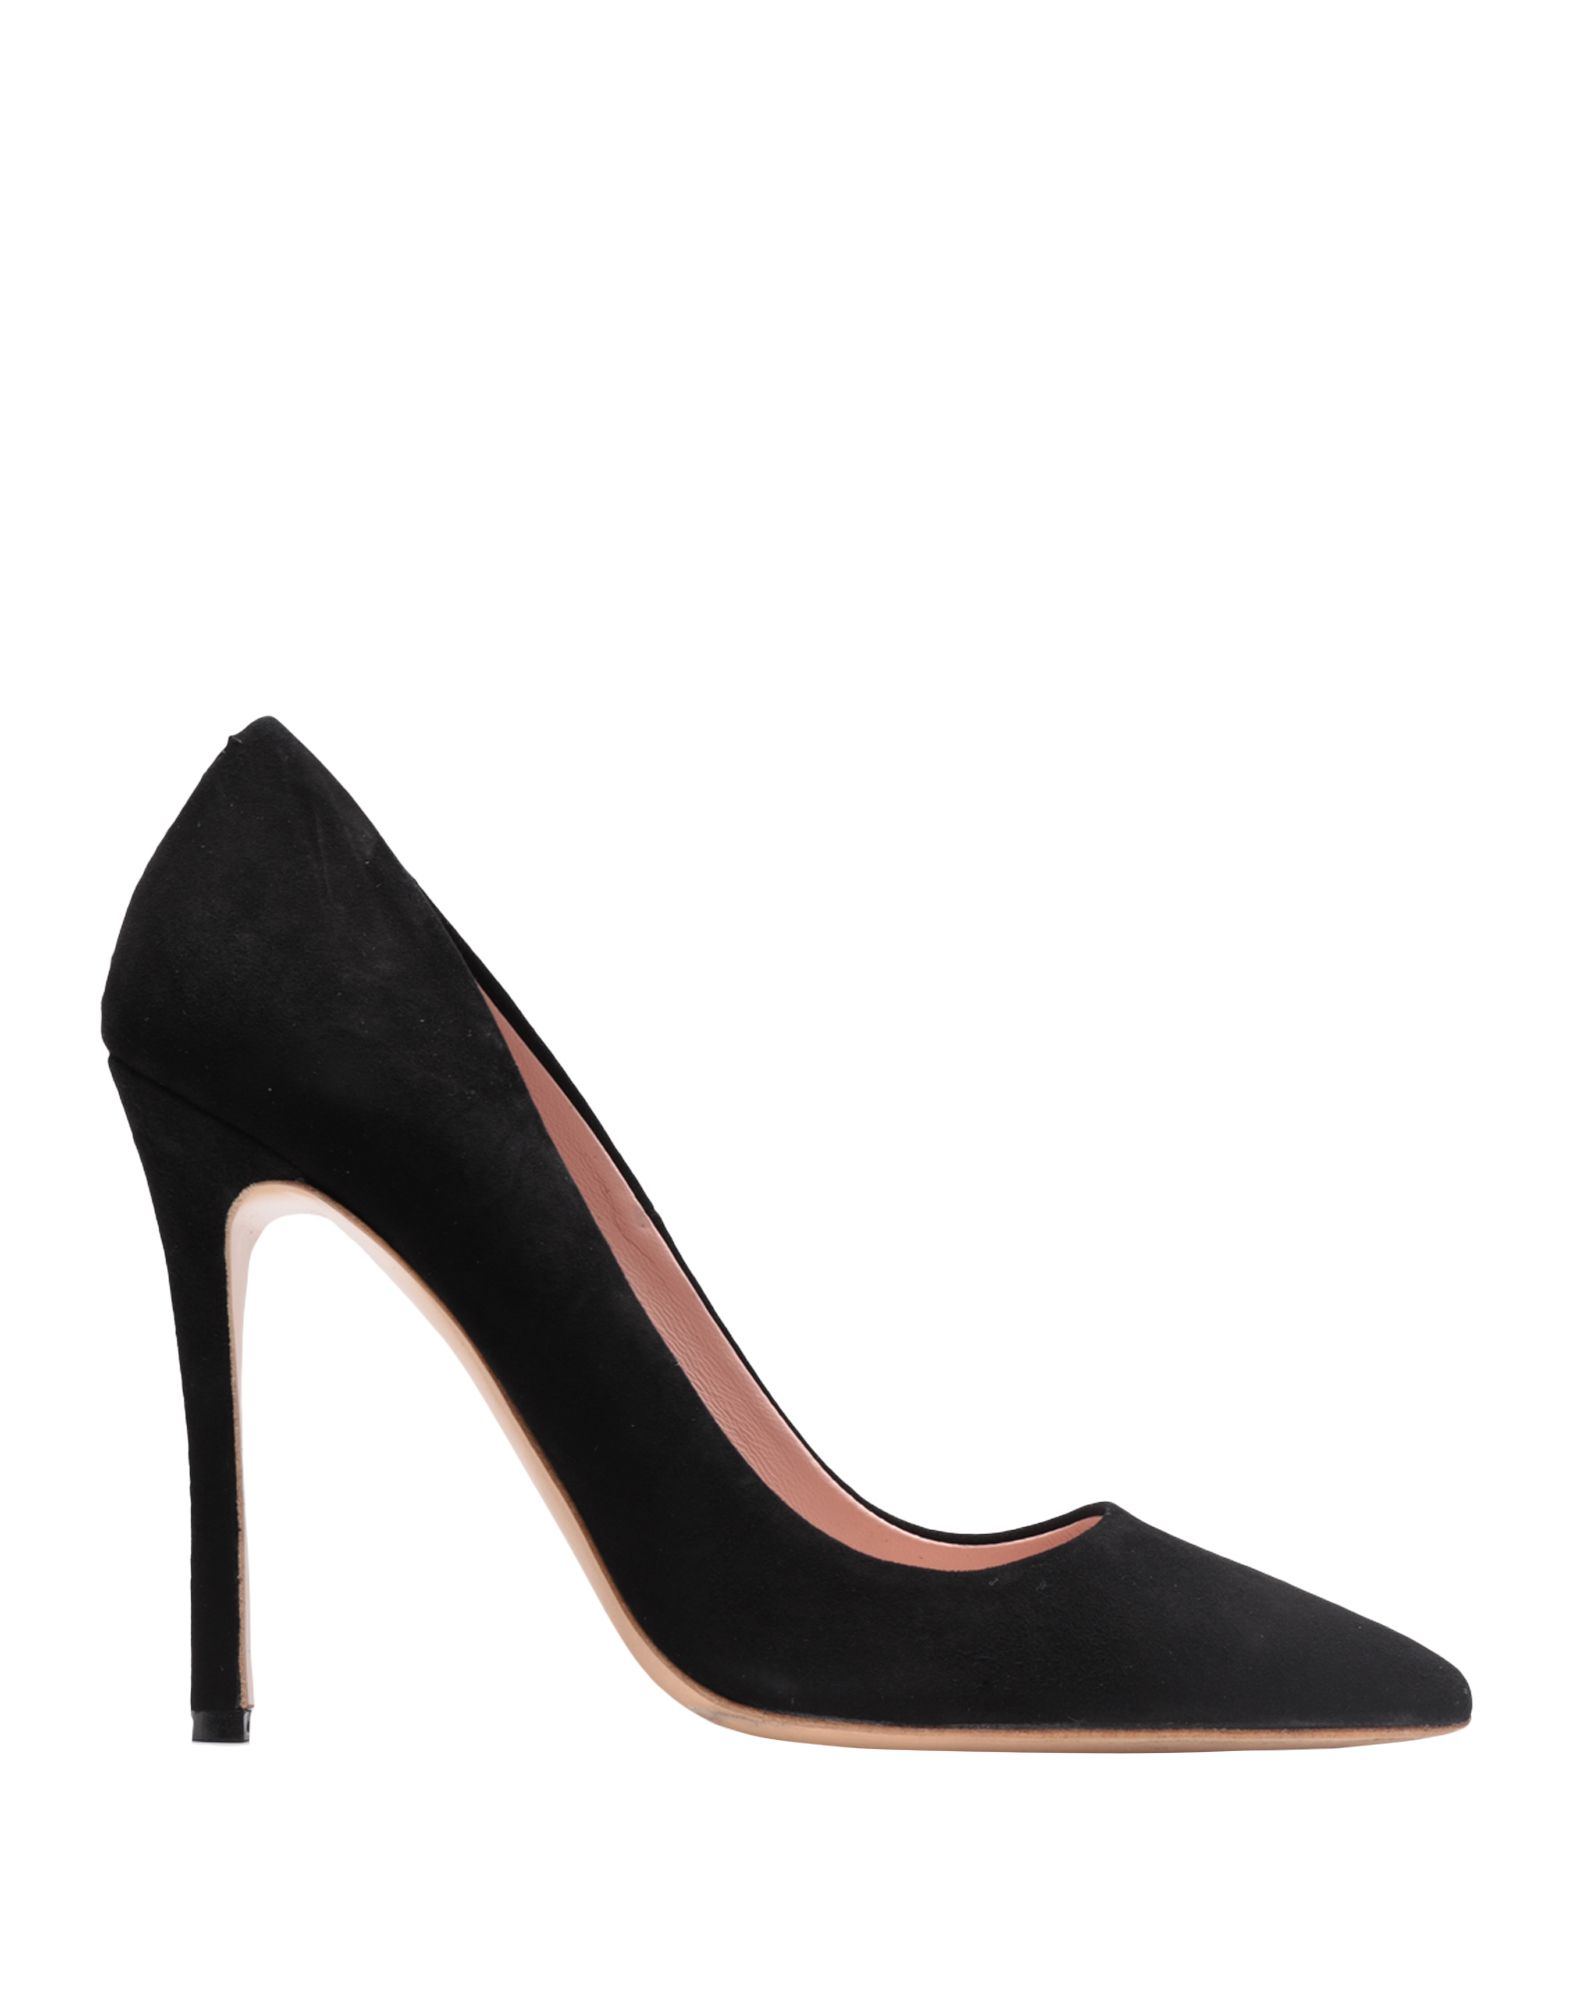 8 by YOOX Pumps Damen Schwarz von 8 by YOOX